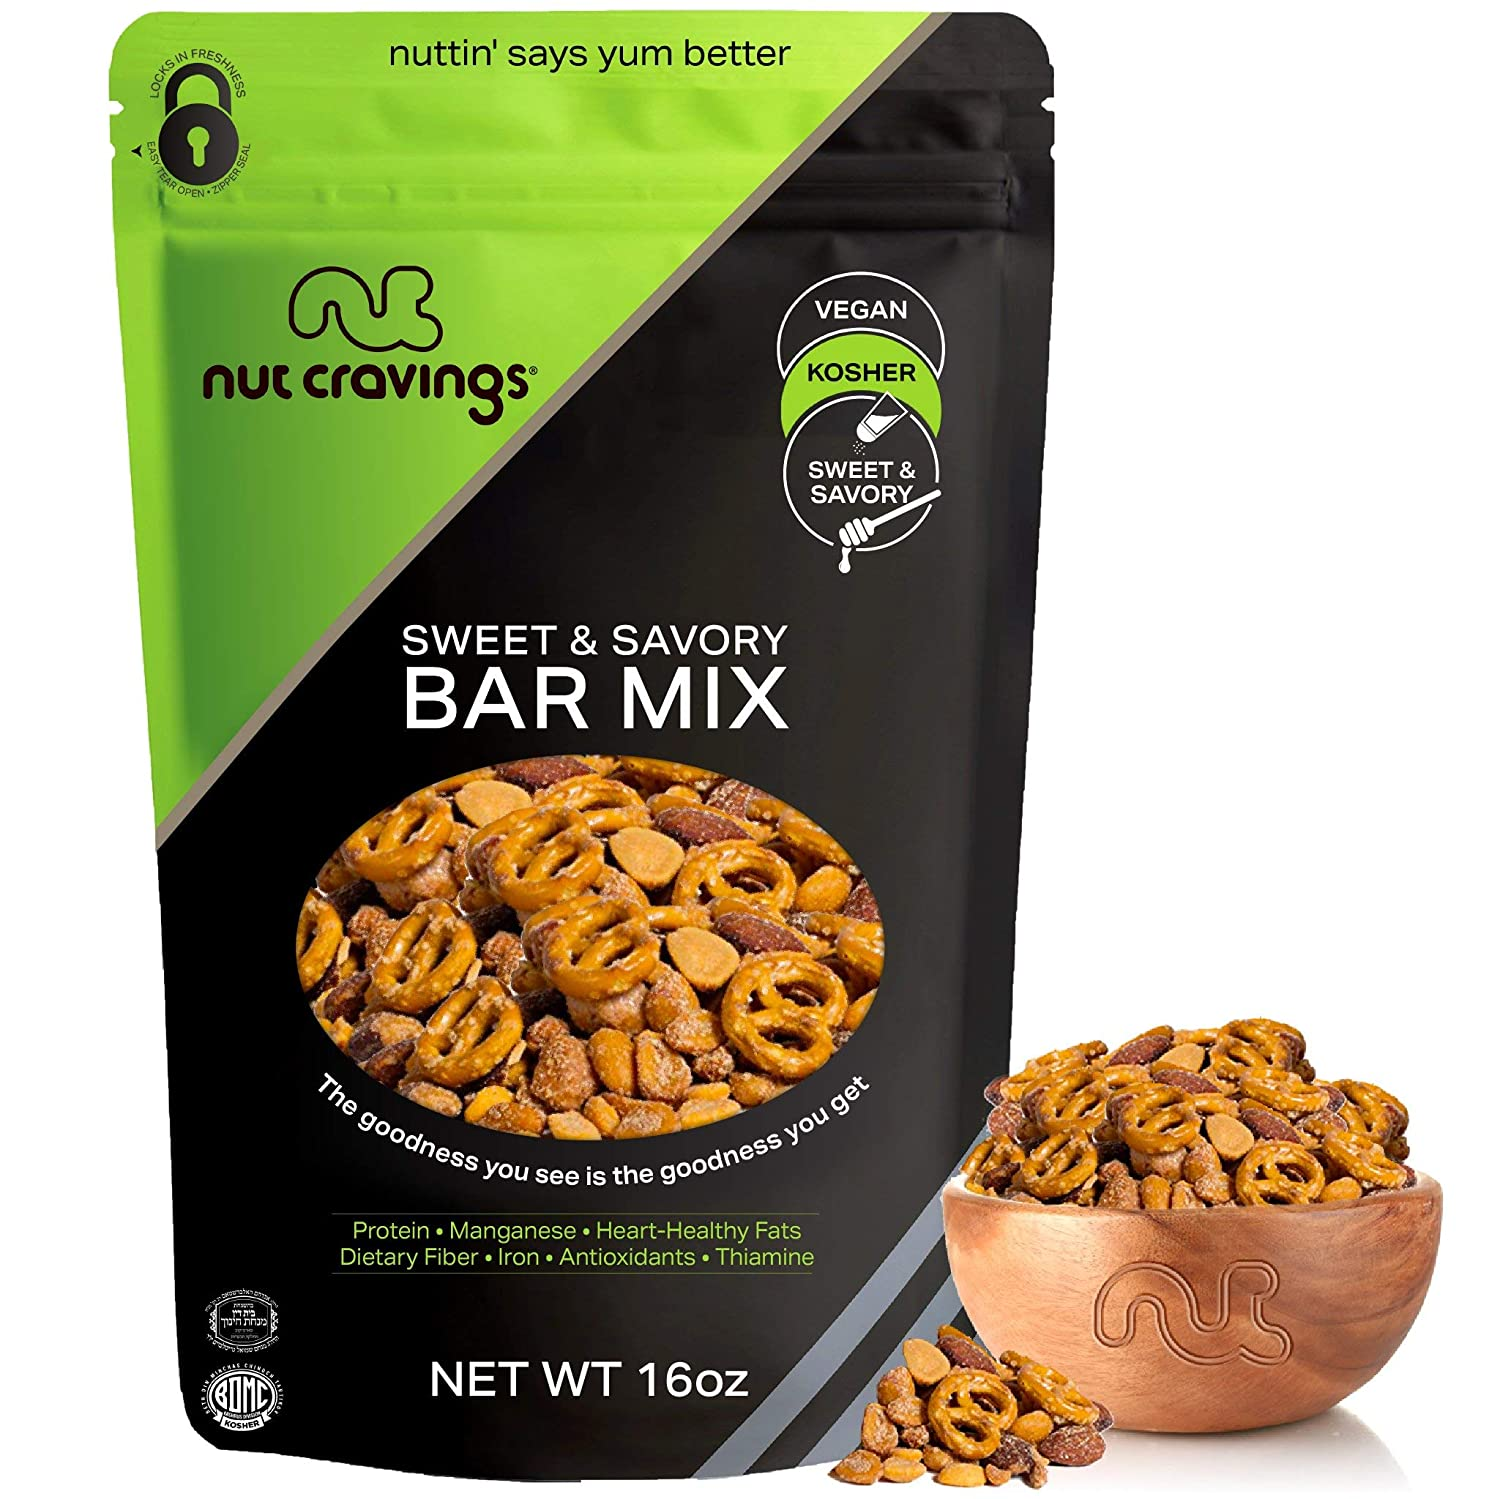 Party Bar Nut Mix, Sweet & Savory Pub Snack - Smoked Almonds, Pretzels, Toffee Peanuts, Spicy & Honey Roasted Peanut (16oz - 1 Pound) Packed Fresh in Resealable Bag - Healthy Protein Food, Kosher